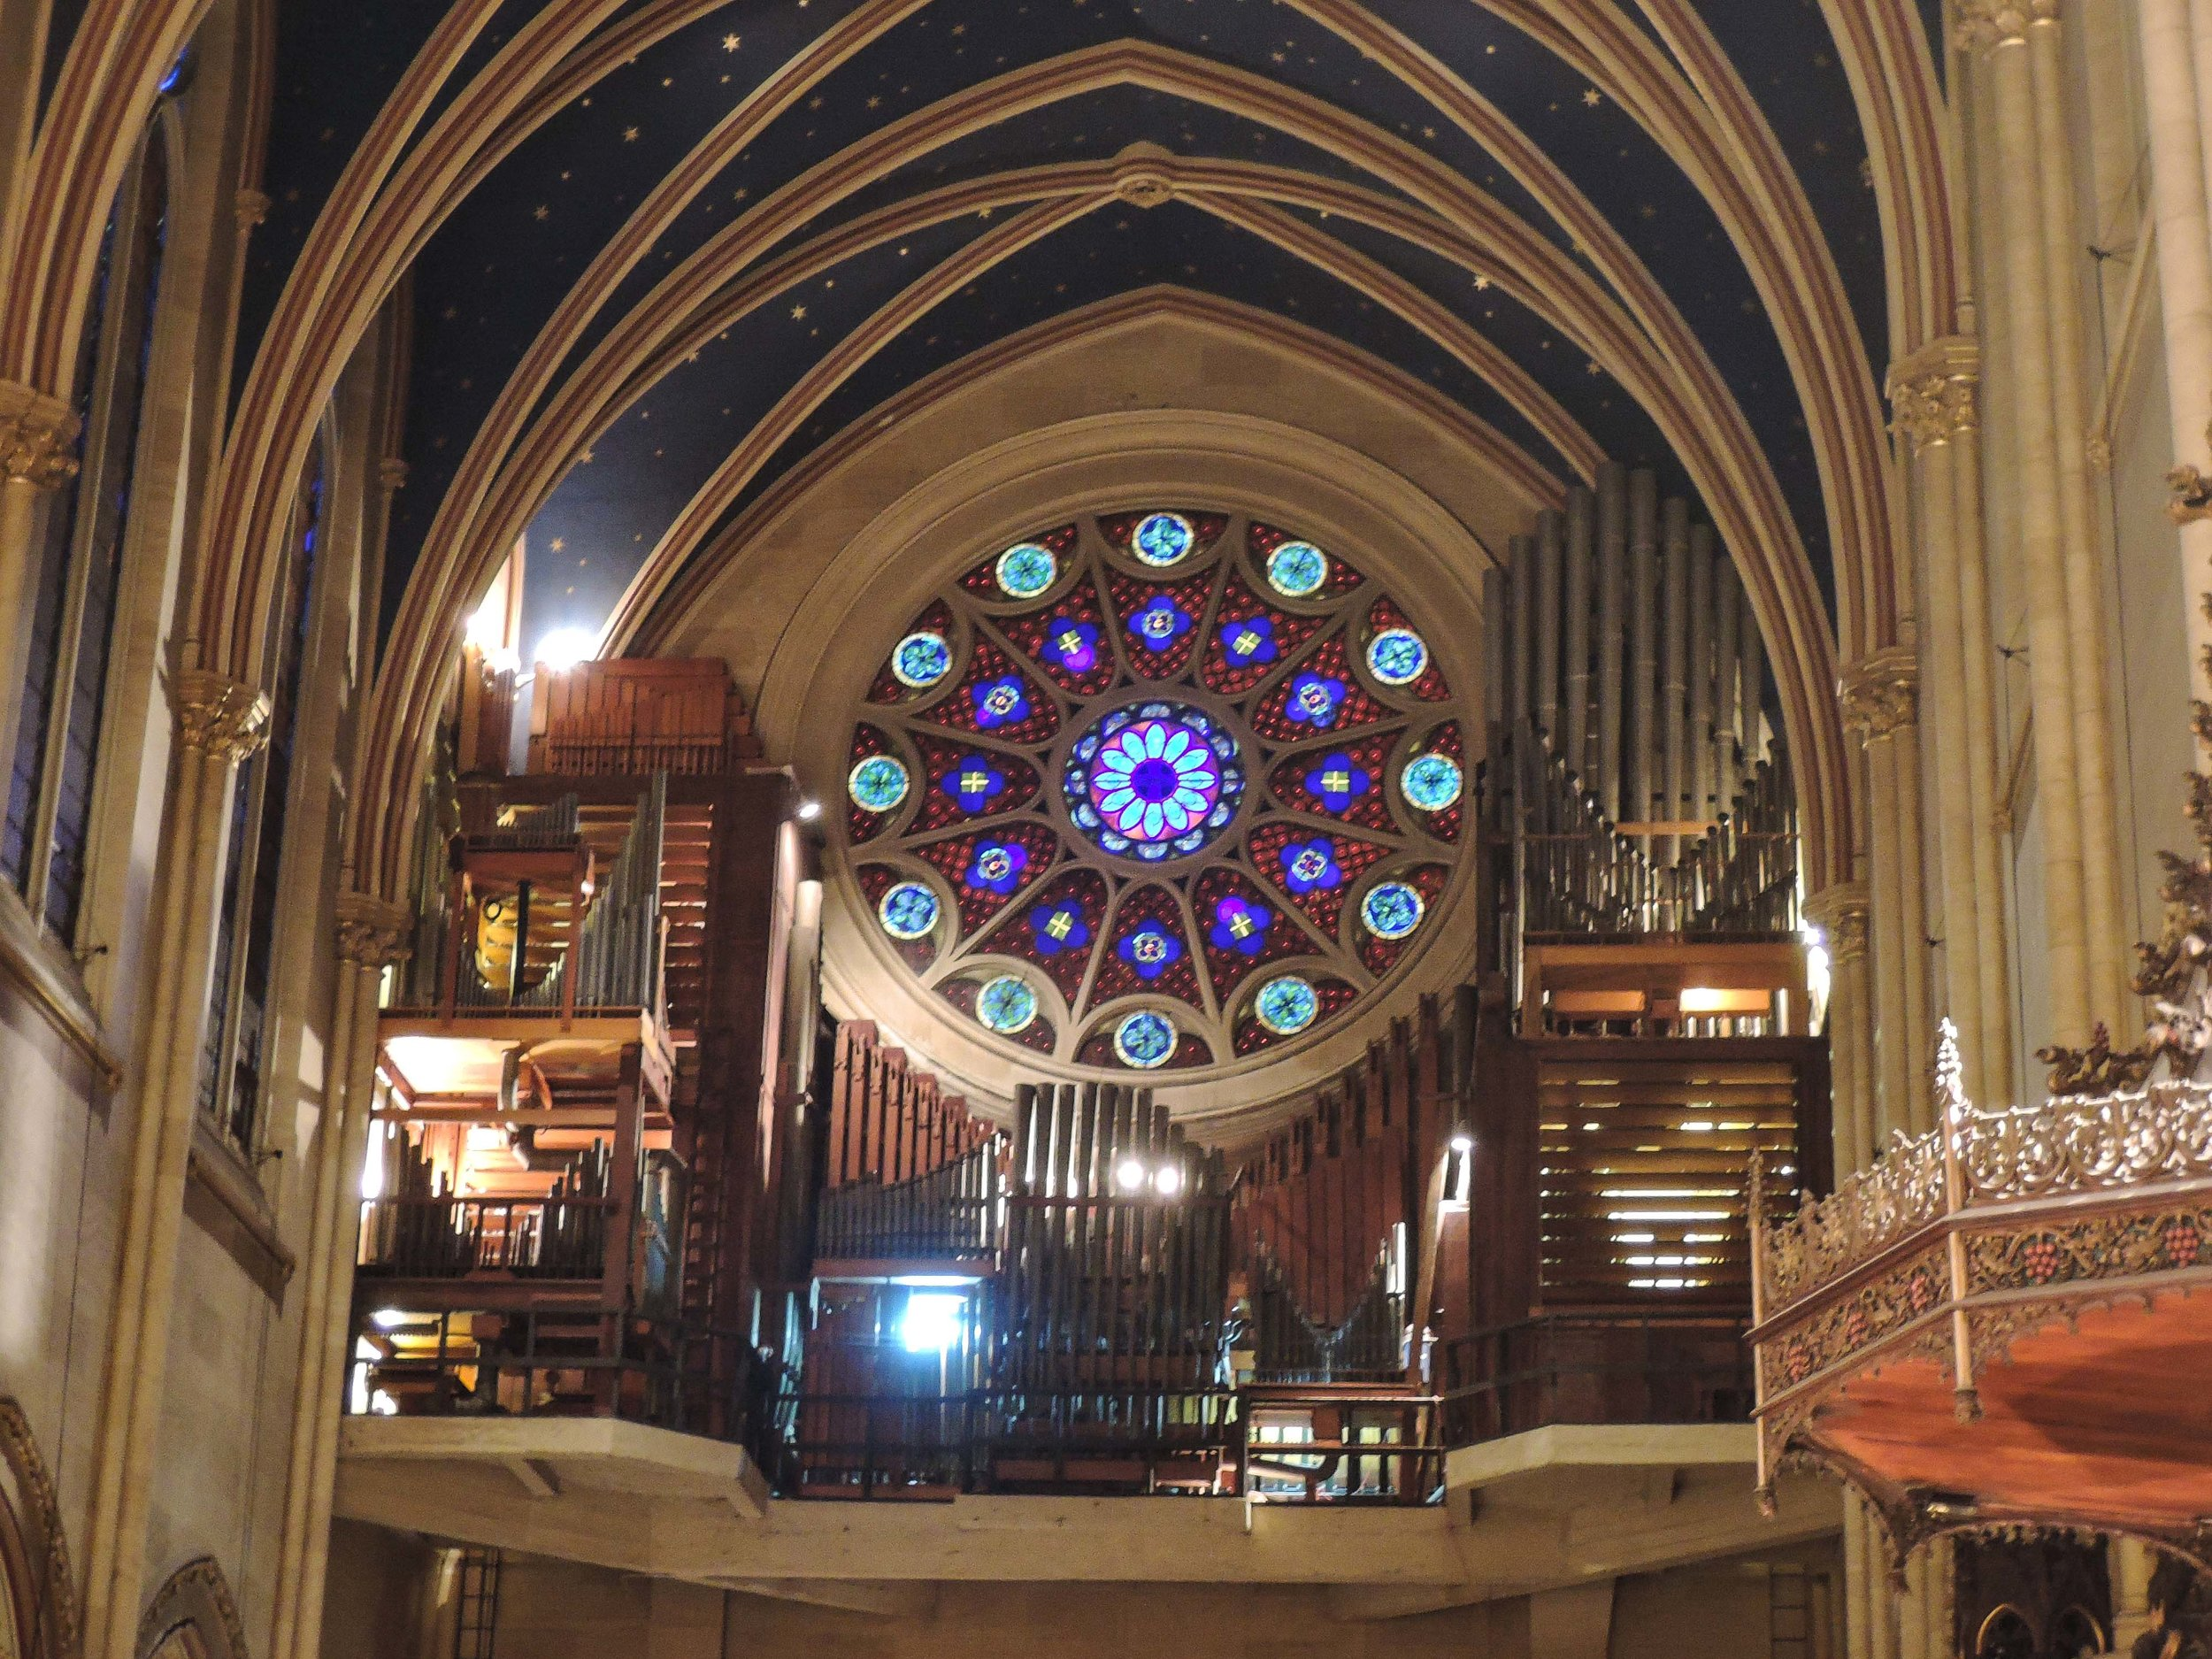 The lights were on while Larry Trupiano tuned the organ on Wednesday, January 31, before the Candlemas recital and services.  Photo by Sr. Monica Clare, C.S.J.B.